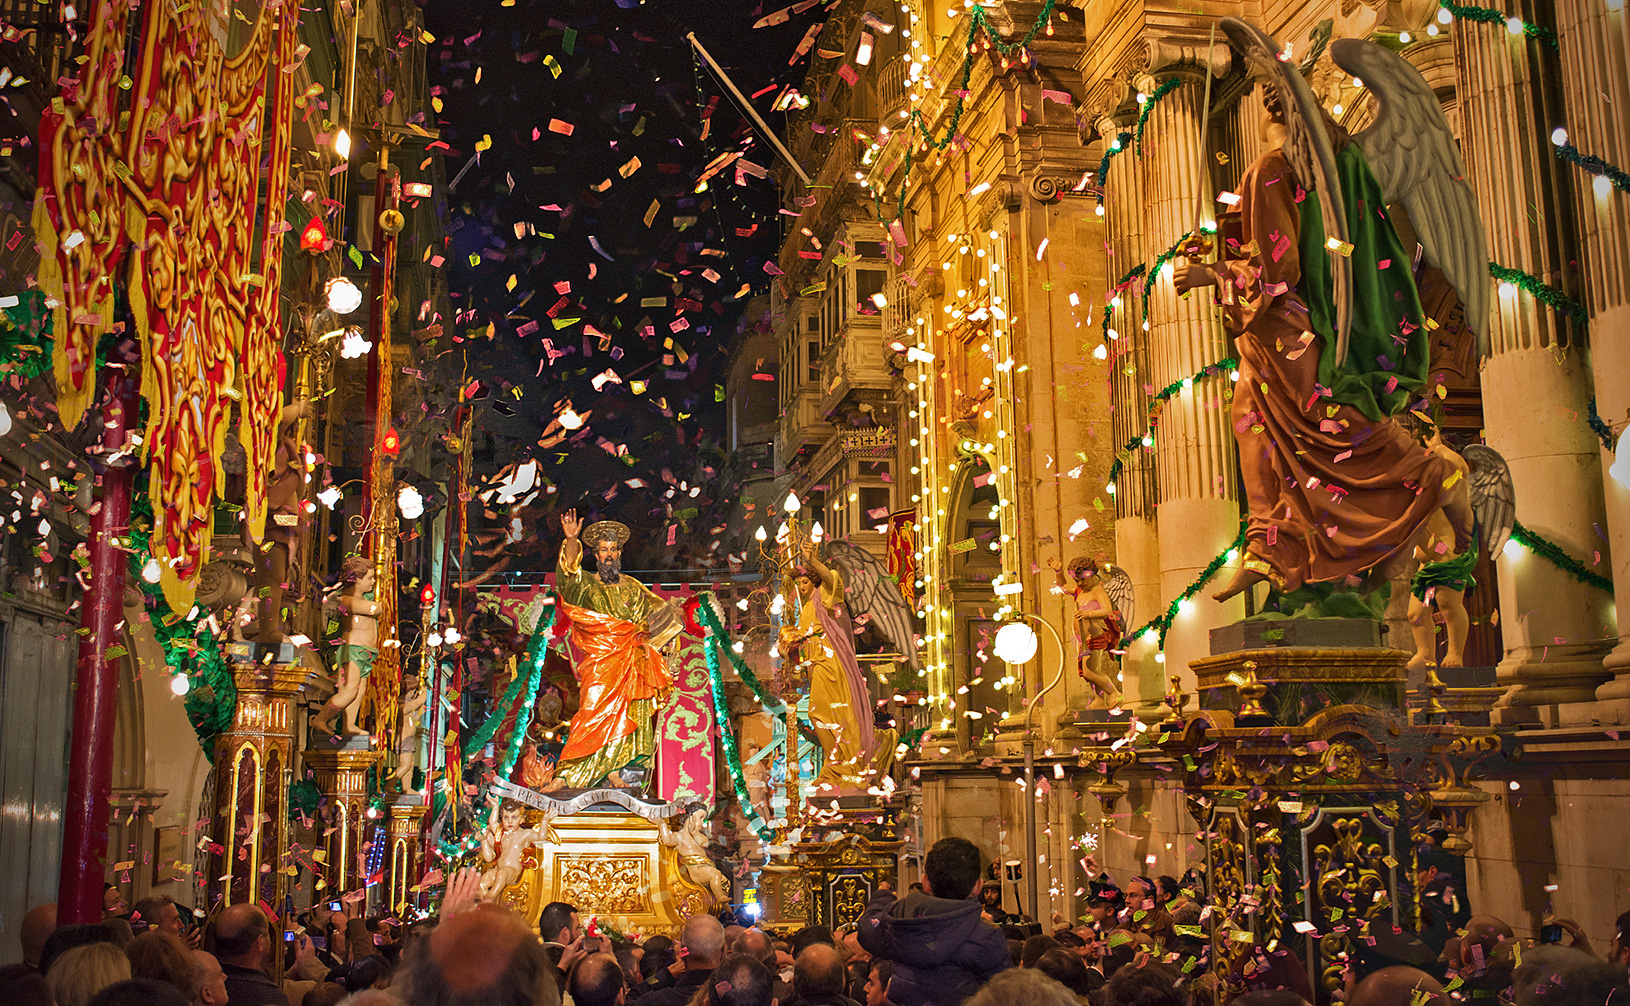 guided tour - St. Paul's feast - Malta